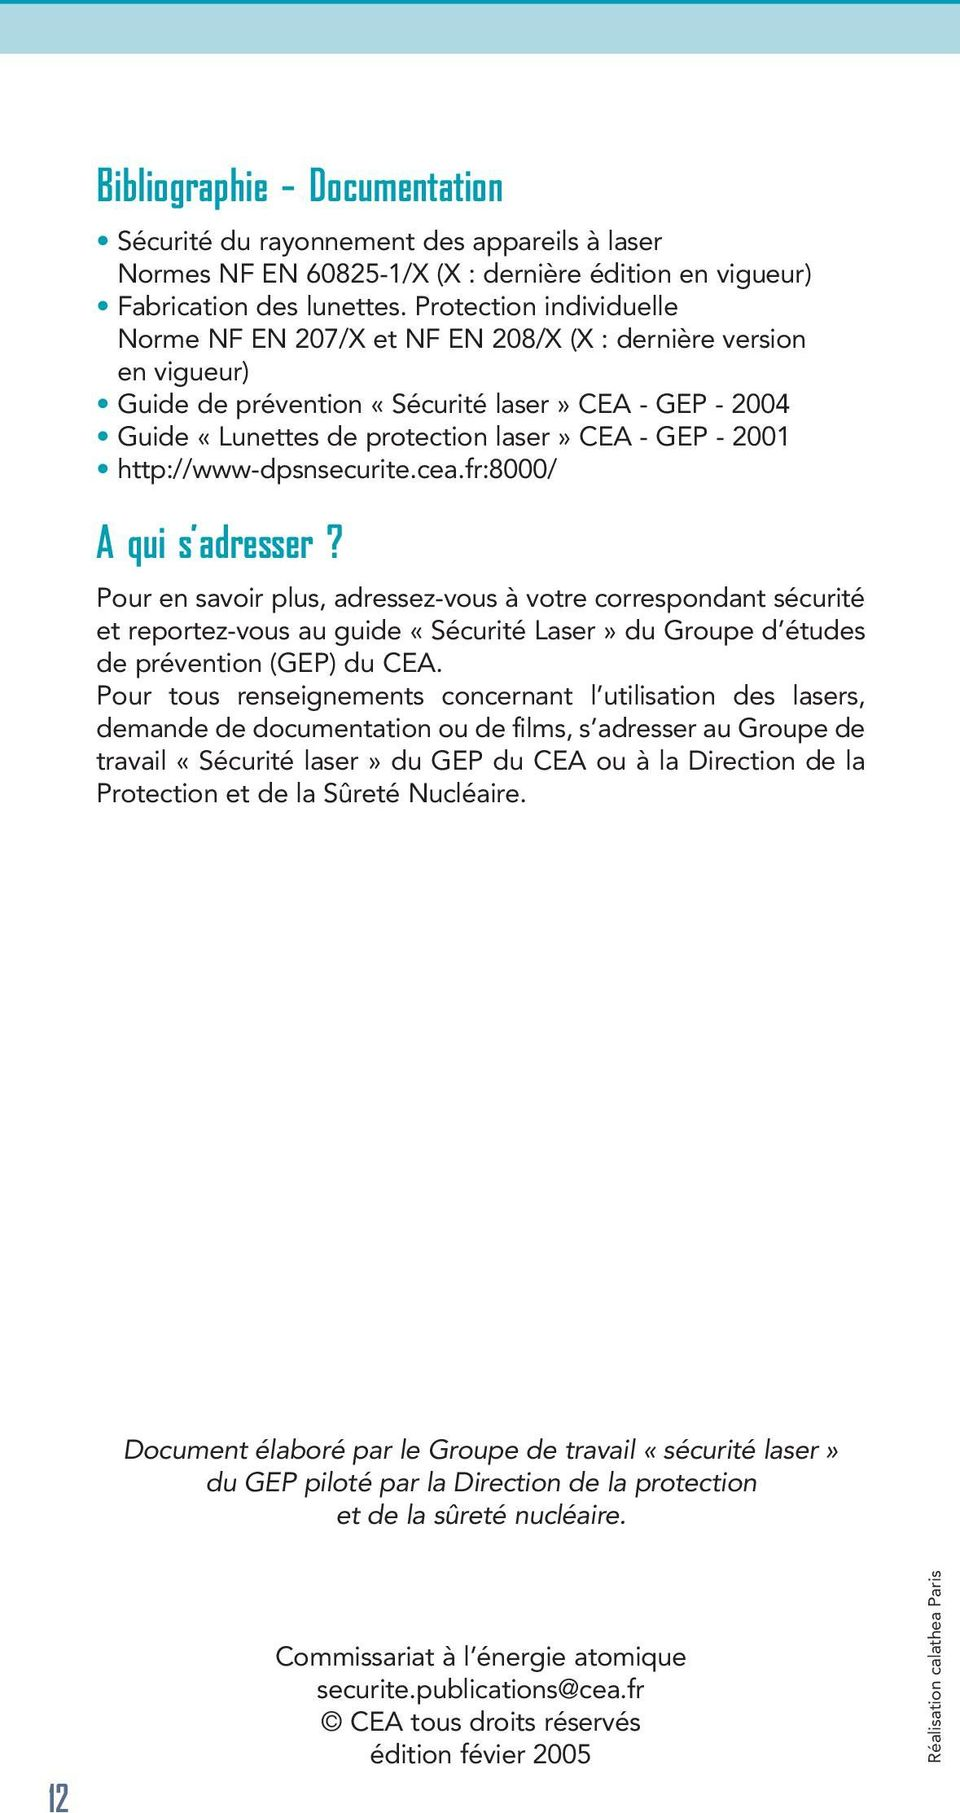 http://www-dpsnsecurite.cea.fr:8000/ A qui s adresser?